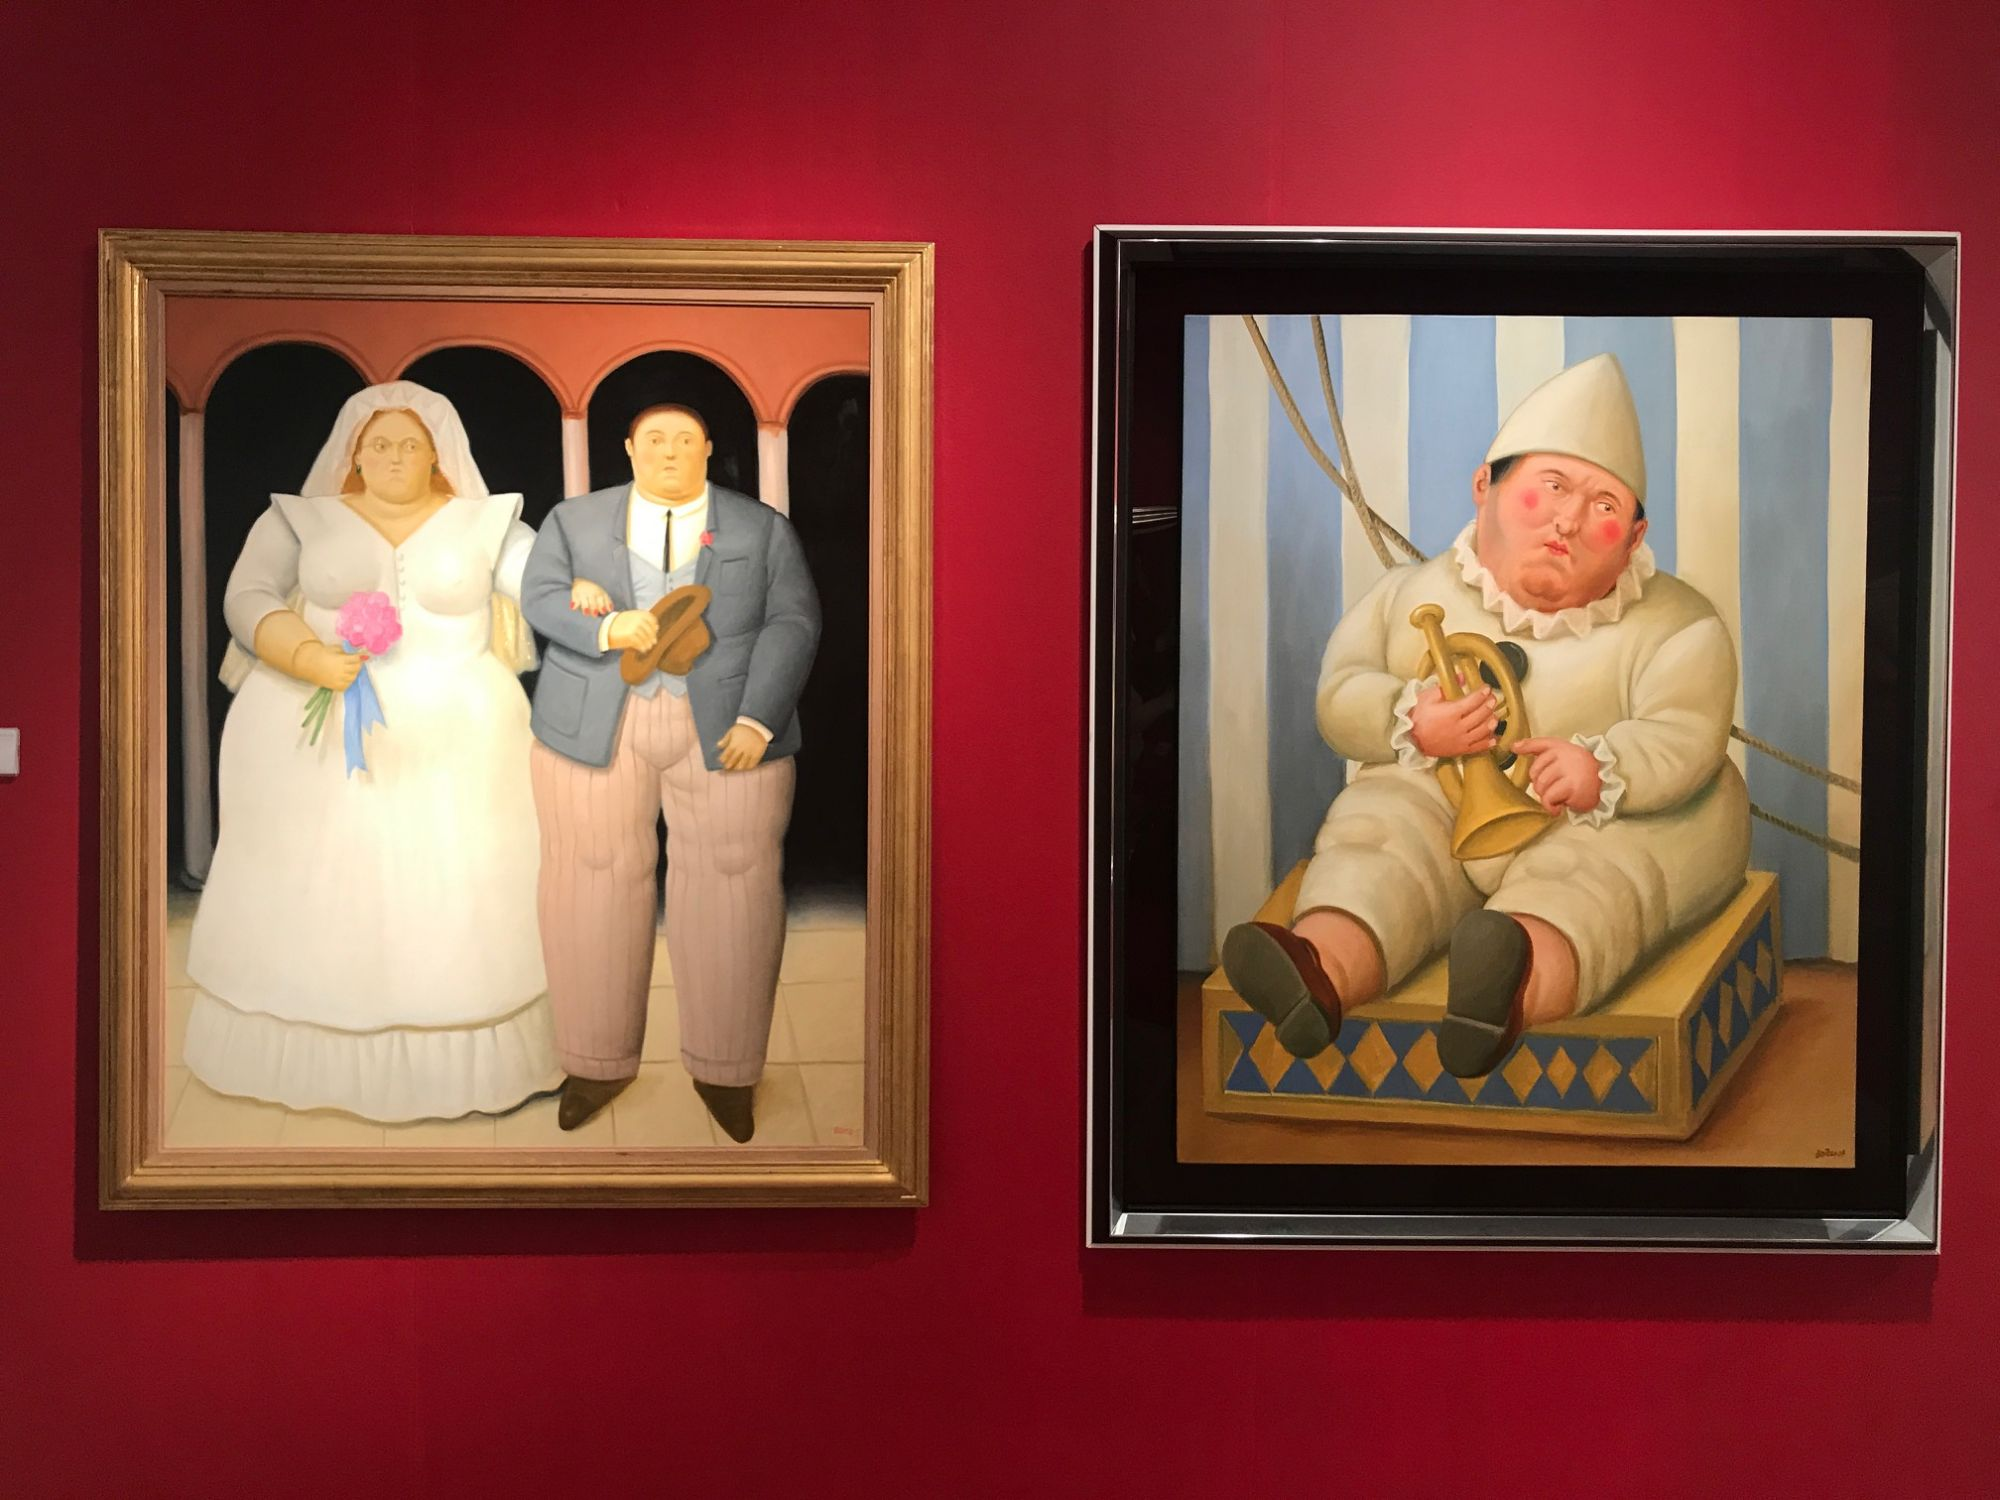 Botero at his best